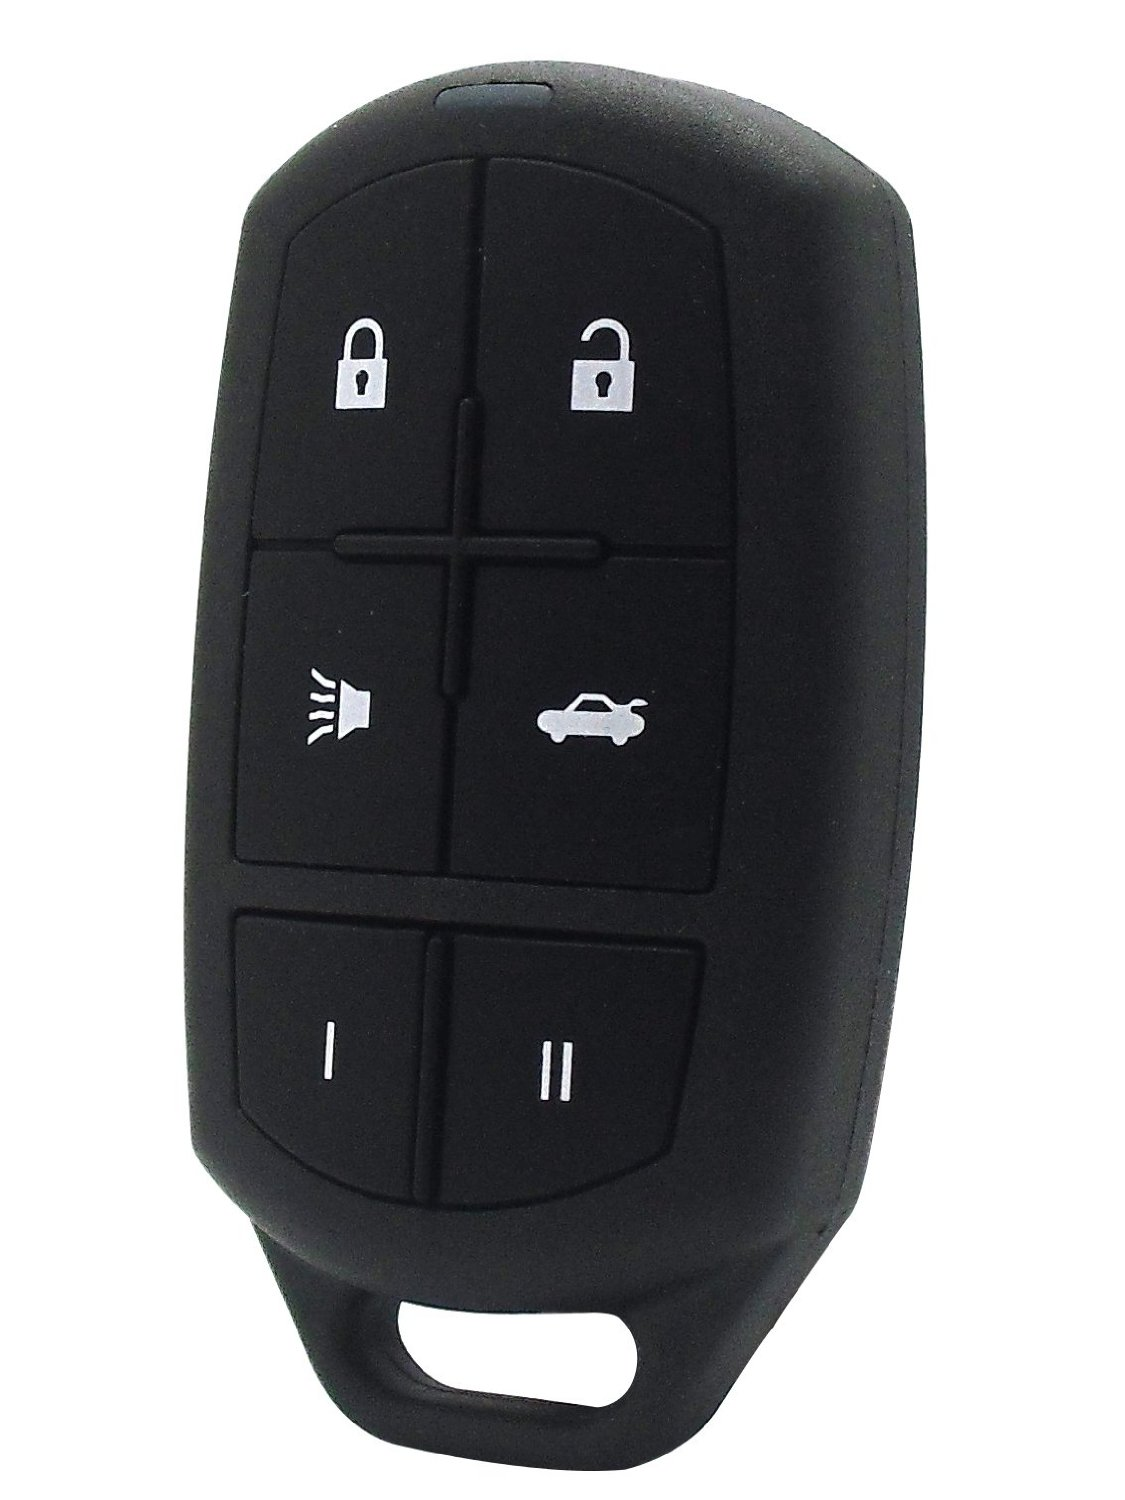 iKeyless Vehicle Keyless Entry Systems